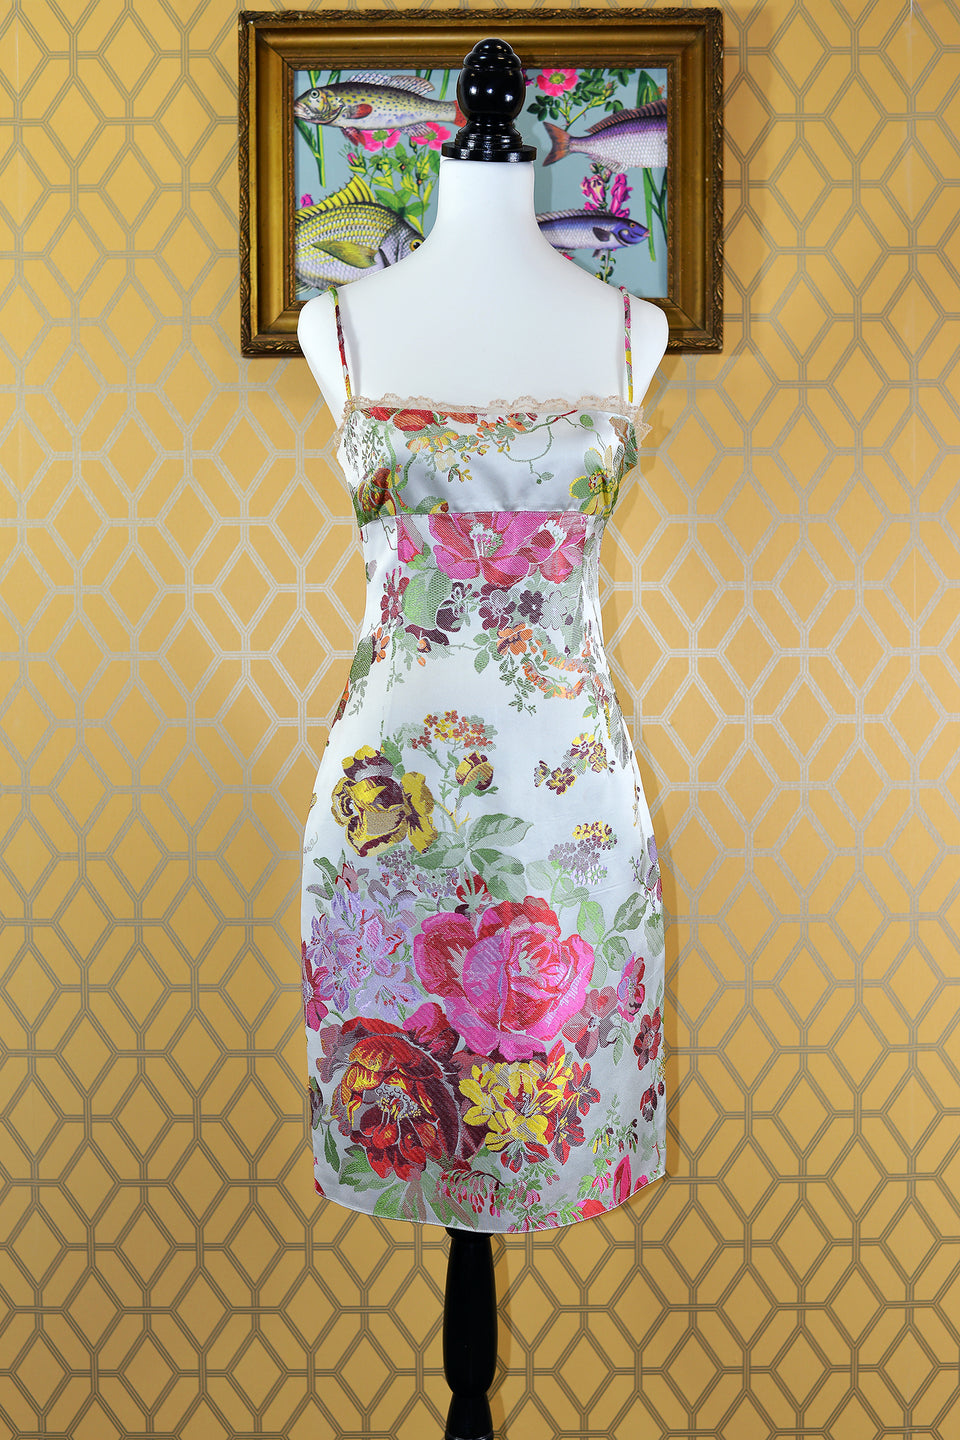 MIU MIU Floral Print Satin Tapestry Effect Strapless Dress. Size 40 (XS). Pre-loved.